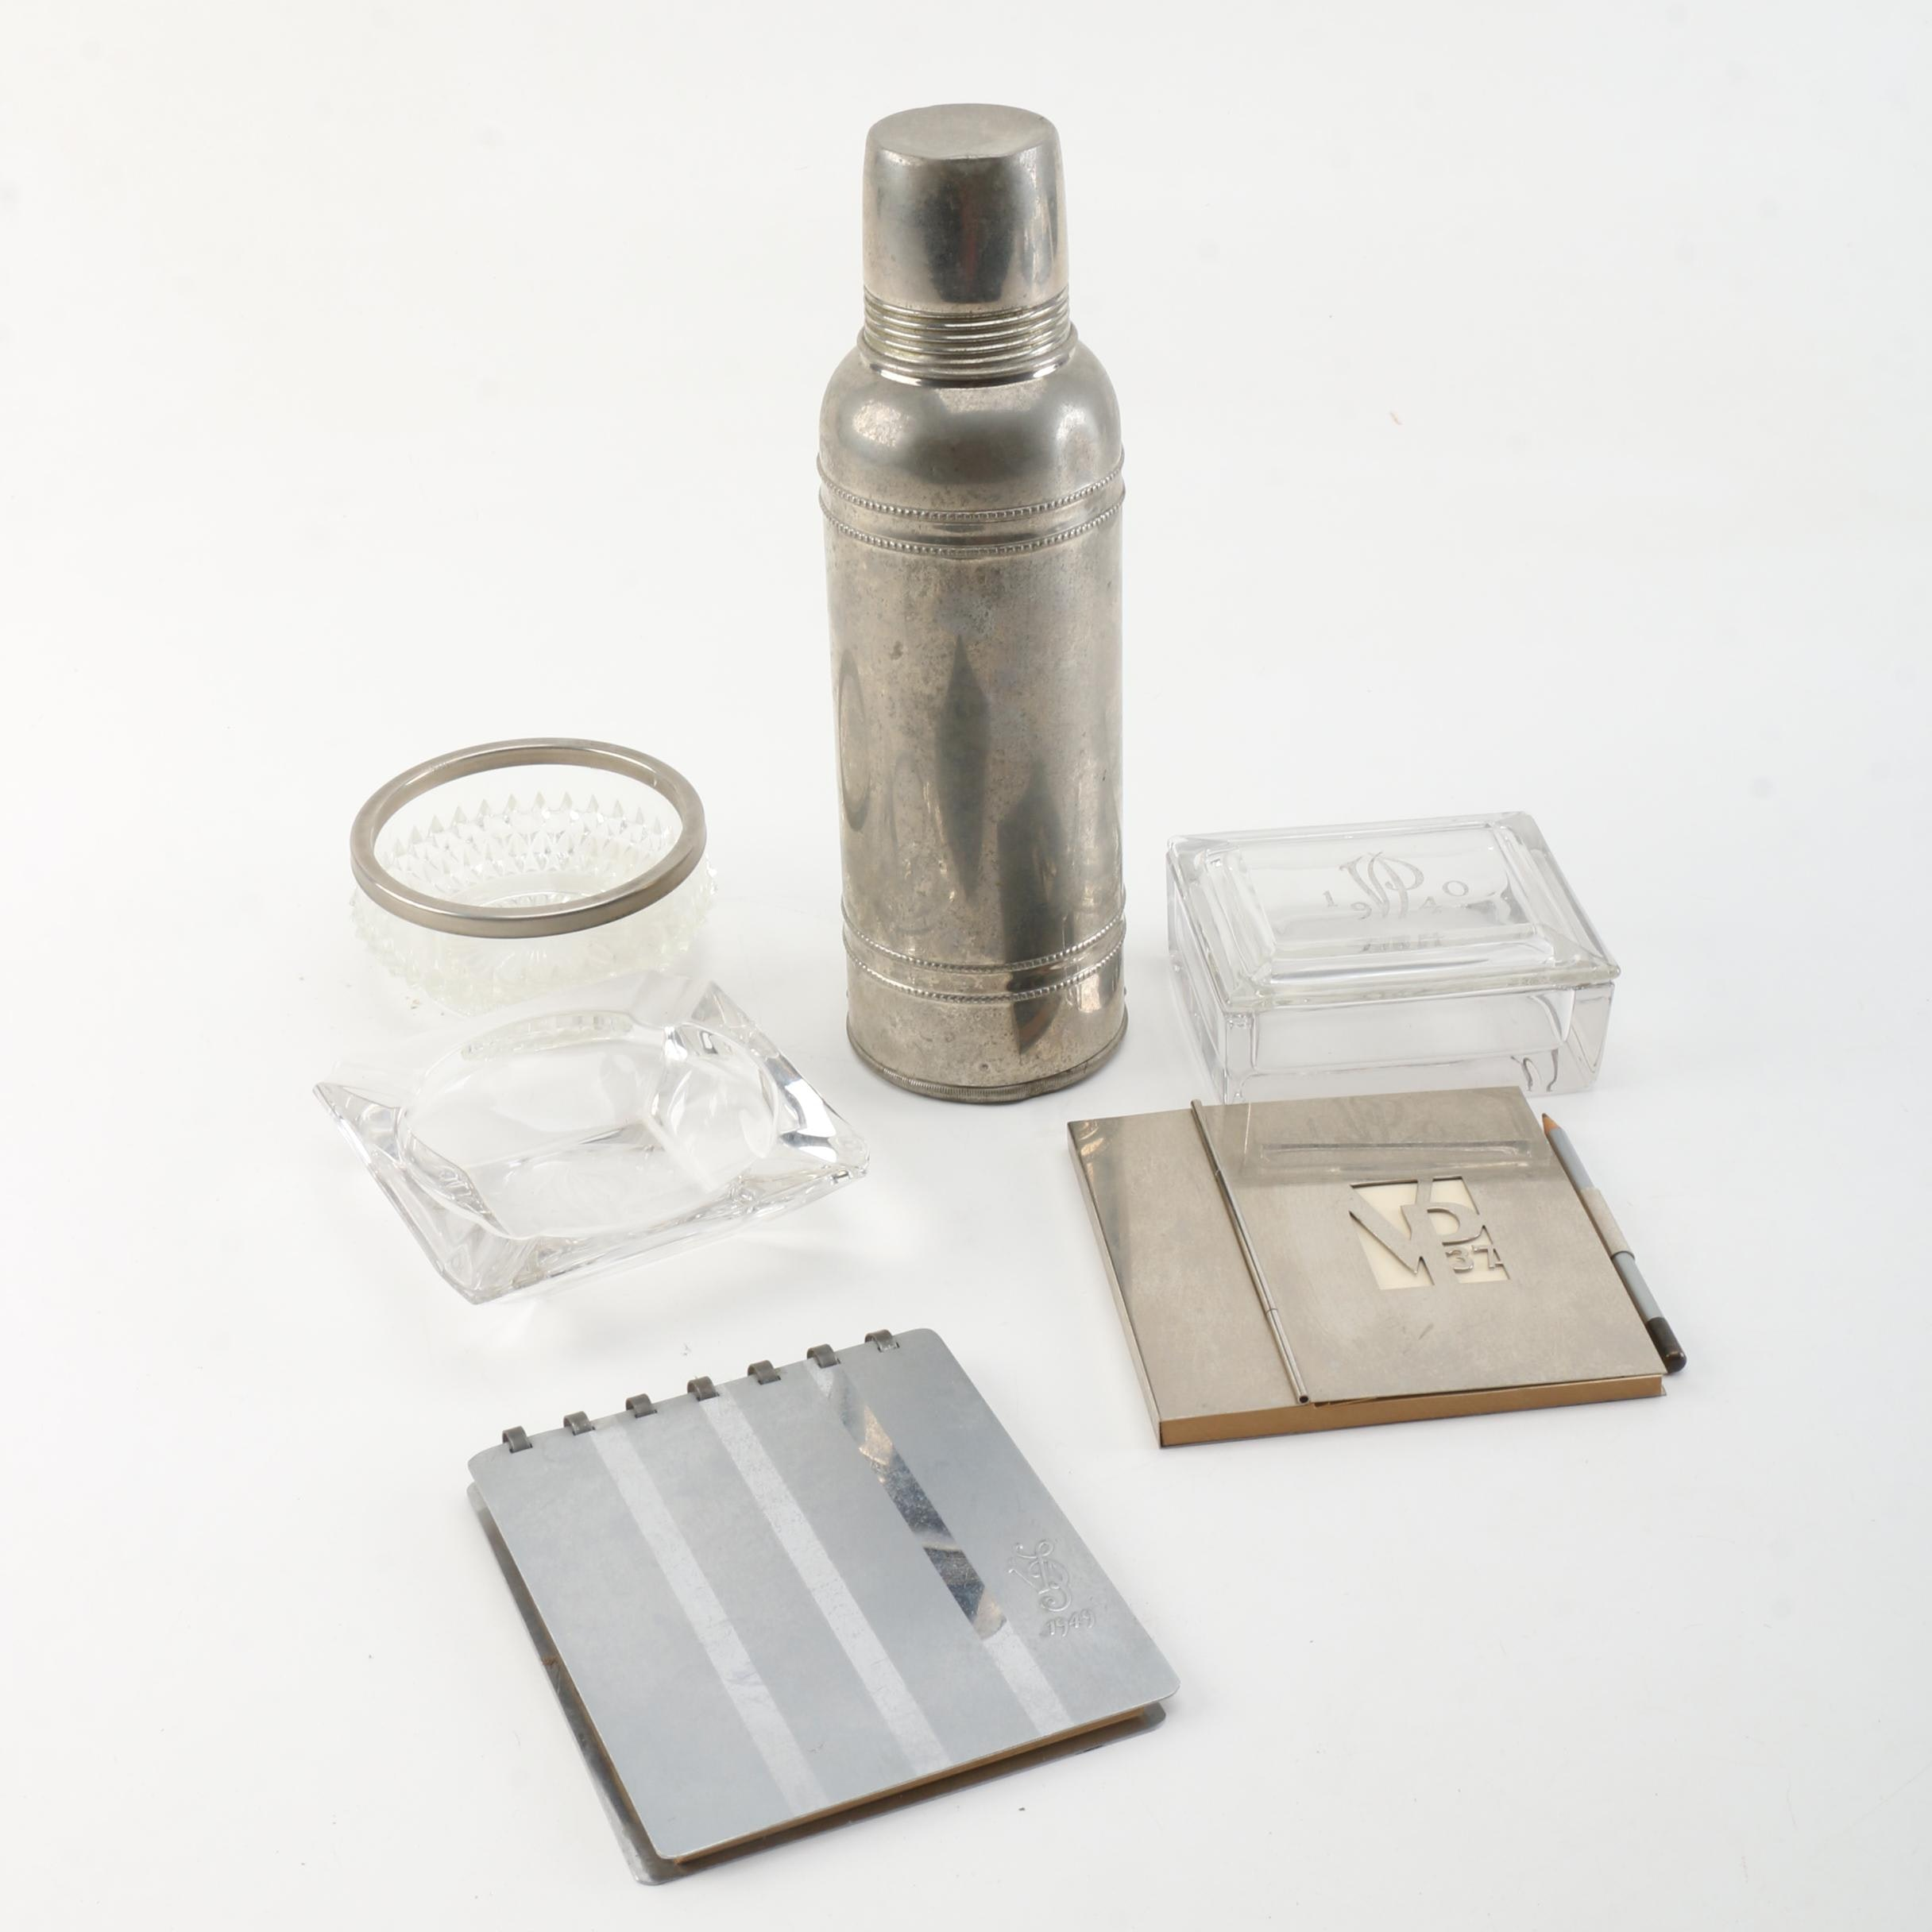 Vintage Veiled Prophet Icy Hot Vacuum Flask and Other Decorative Items